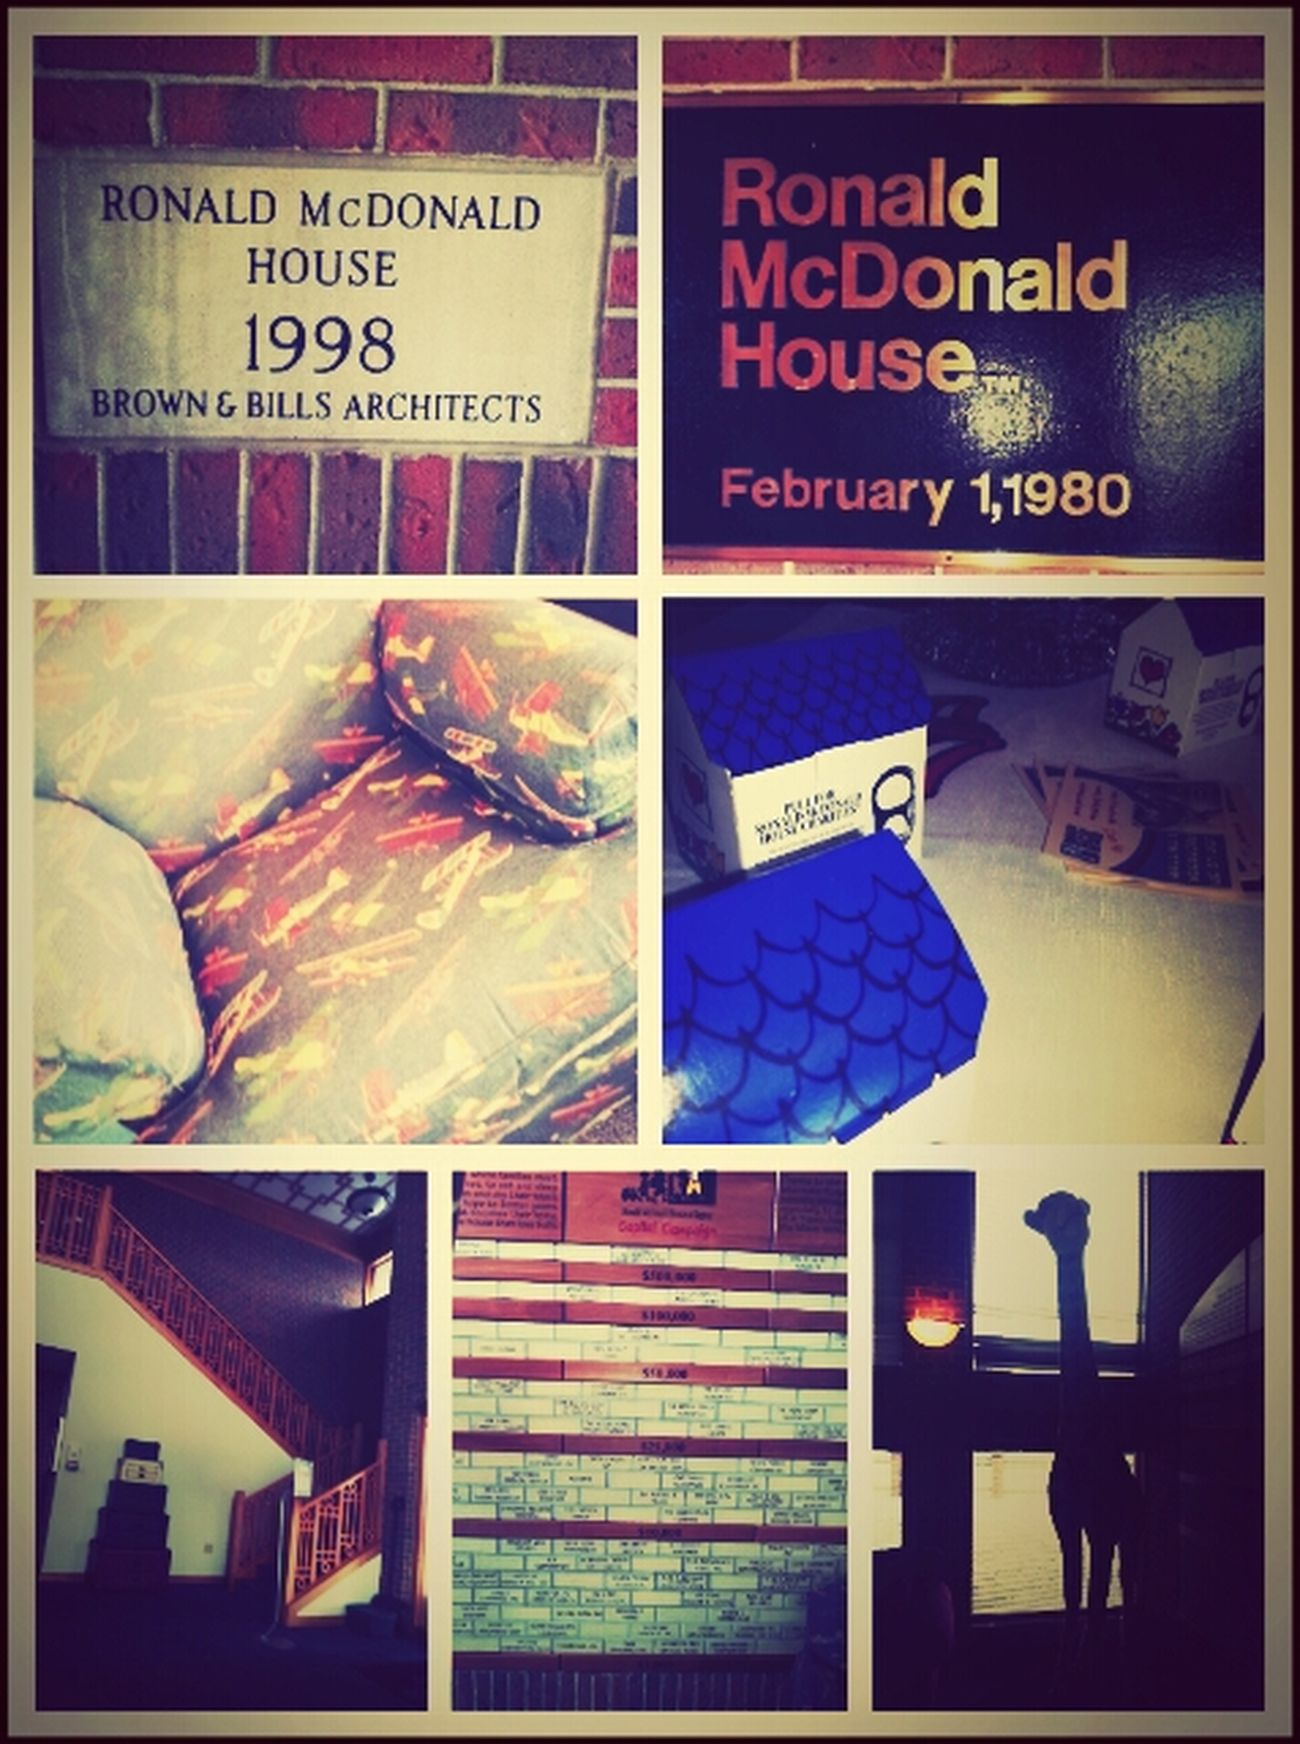 Ronald McDonald's House early : )